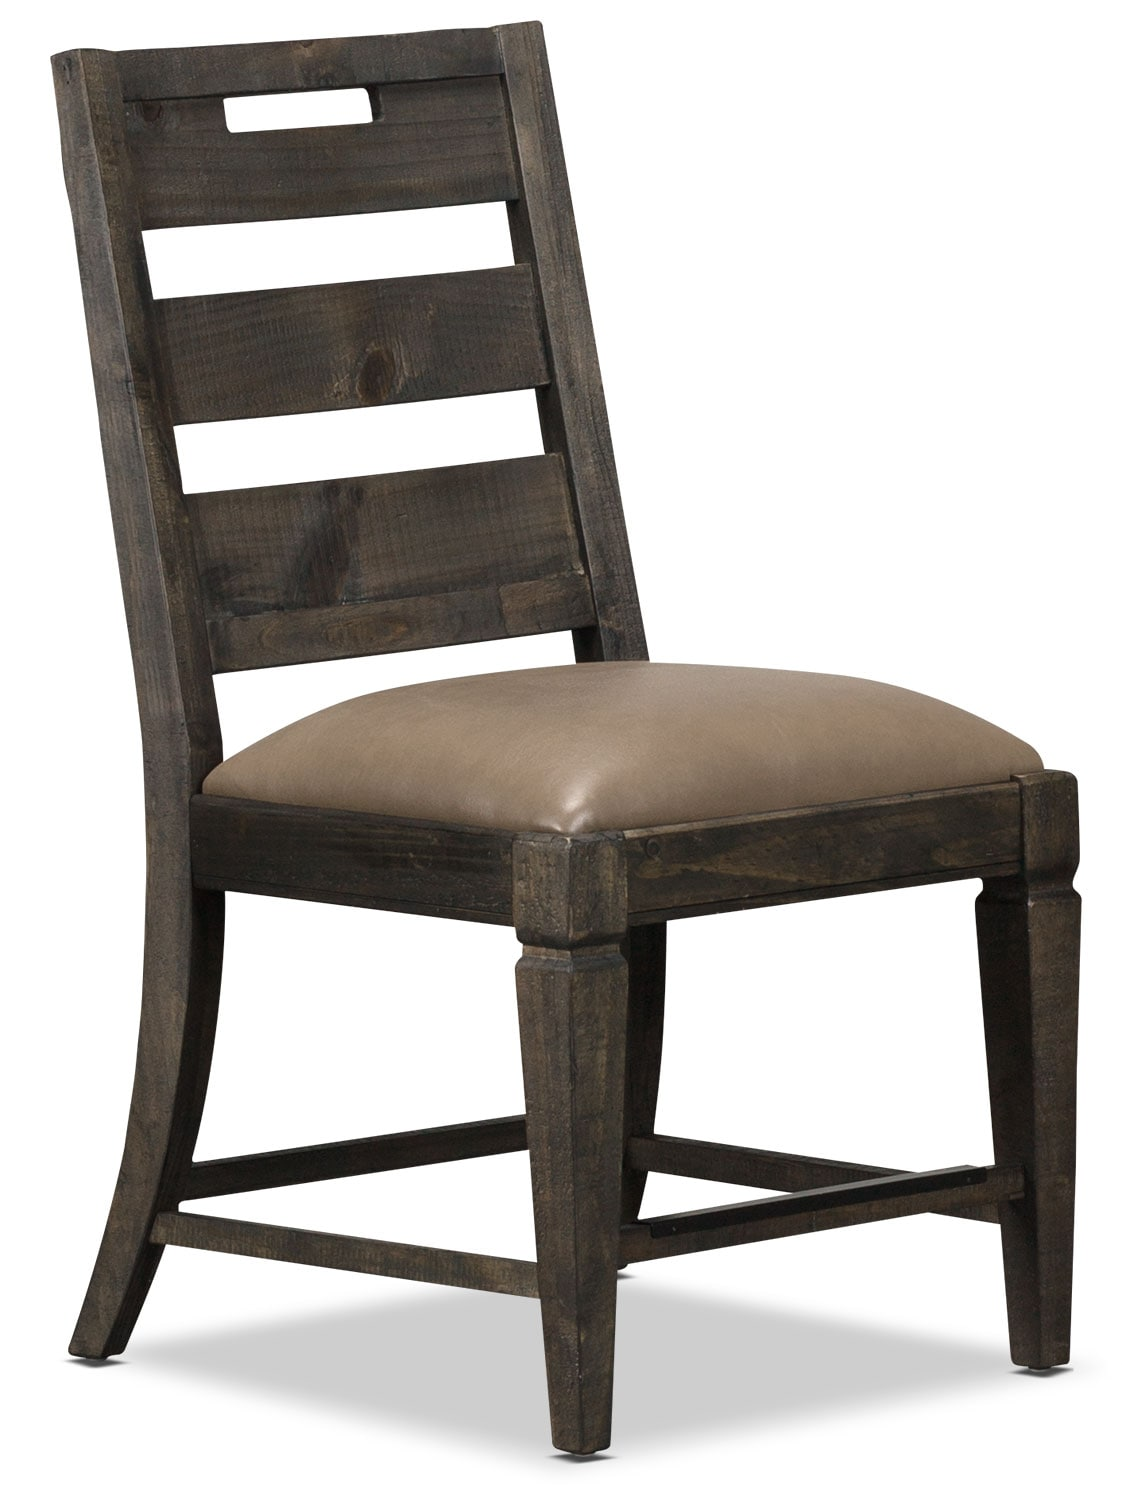 Calistoga Dining Chair